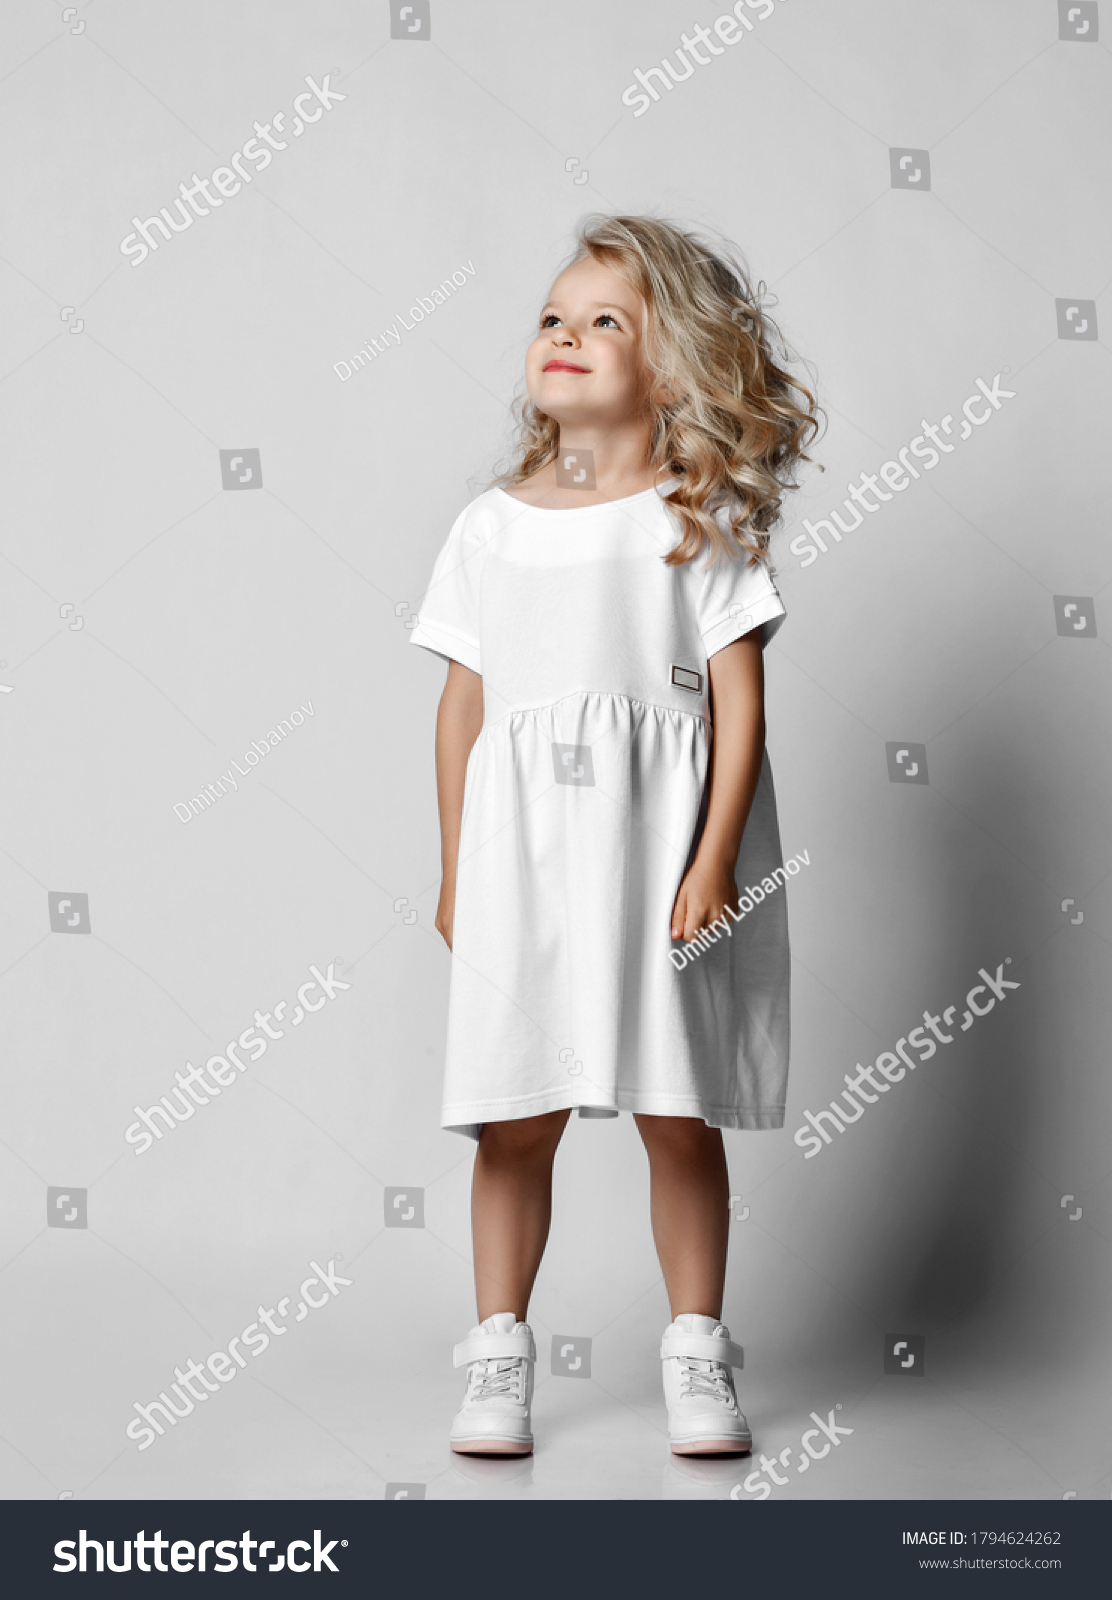 Smiling positive little blonde curly kid girl in white casual dress and sneakers is looking at copy space at upper corner. Stylish comfortable everyday fashion for children concept #1794624262